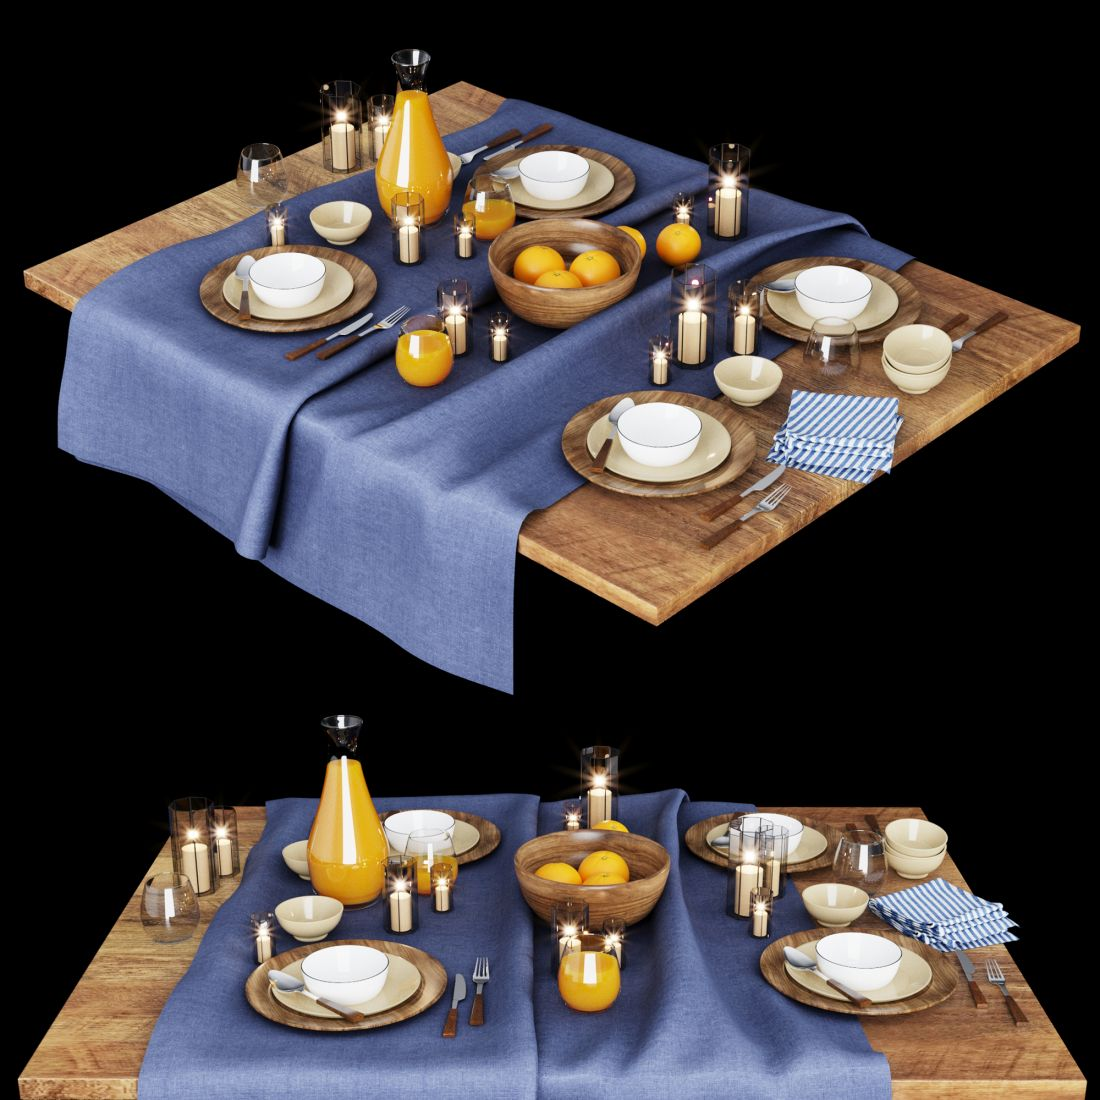 Table Setting01 - 3D Model for VRay, Corona